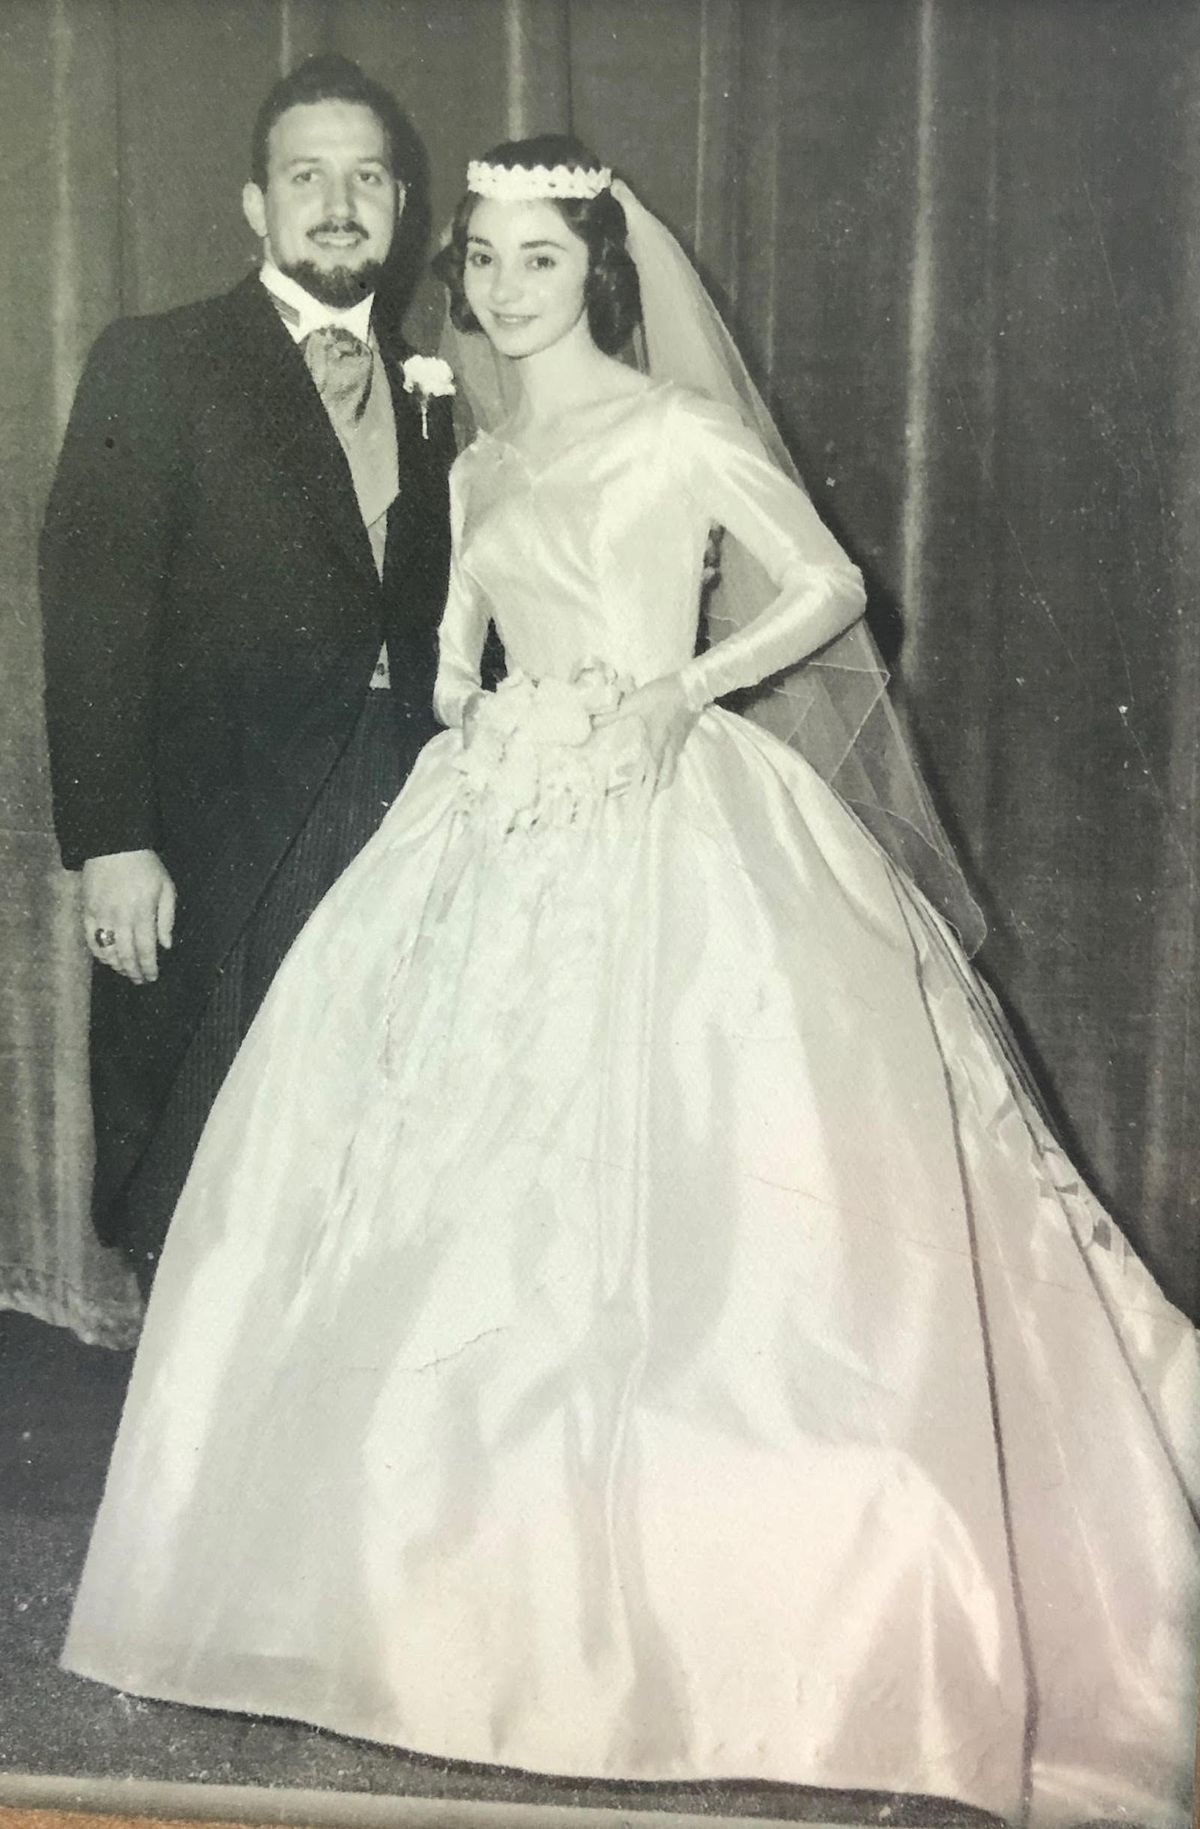 Leo and Helen Wolkow on their wedding day.